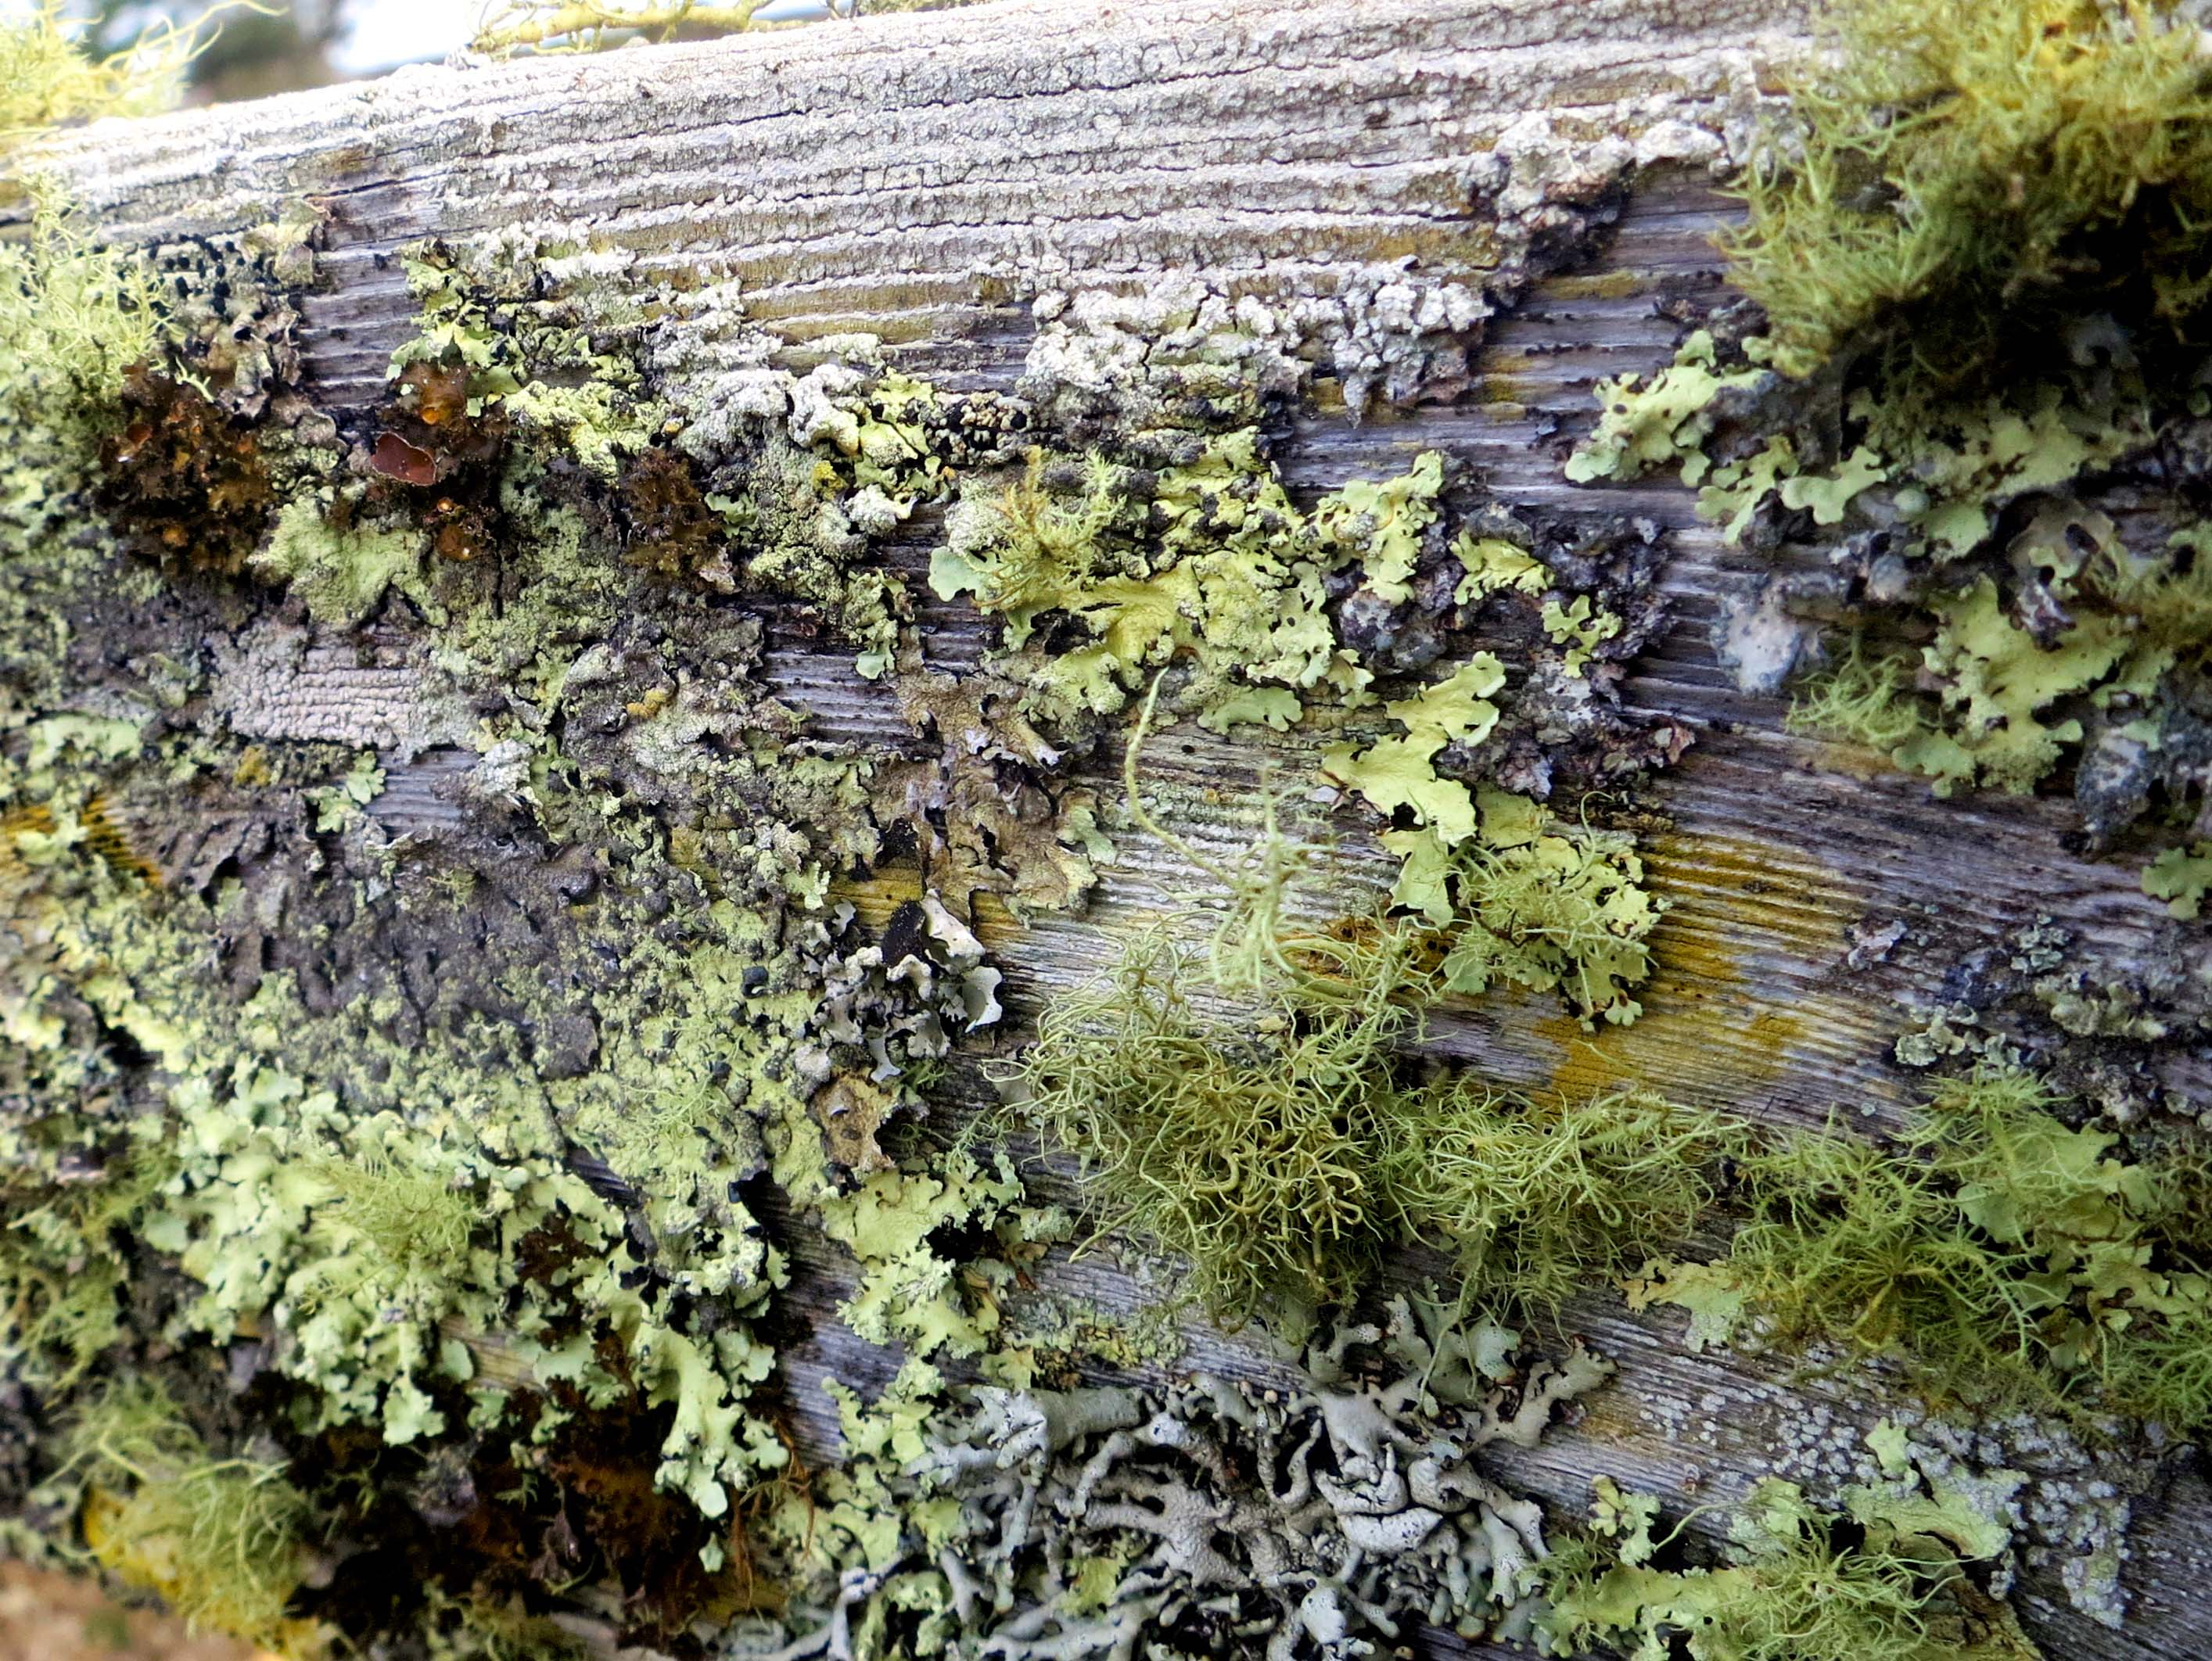 Lichens found on a fence on Pierce Ranch at Pt. Reyes National Seashore. Photo by Curtis Mekemson.